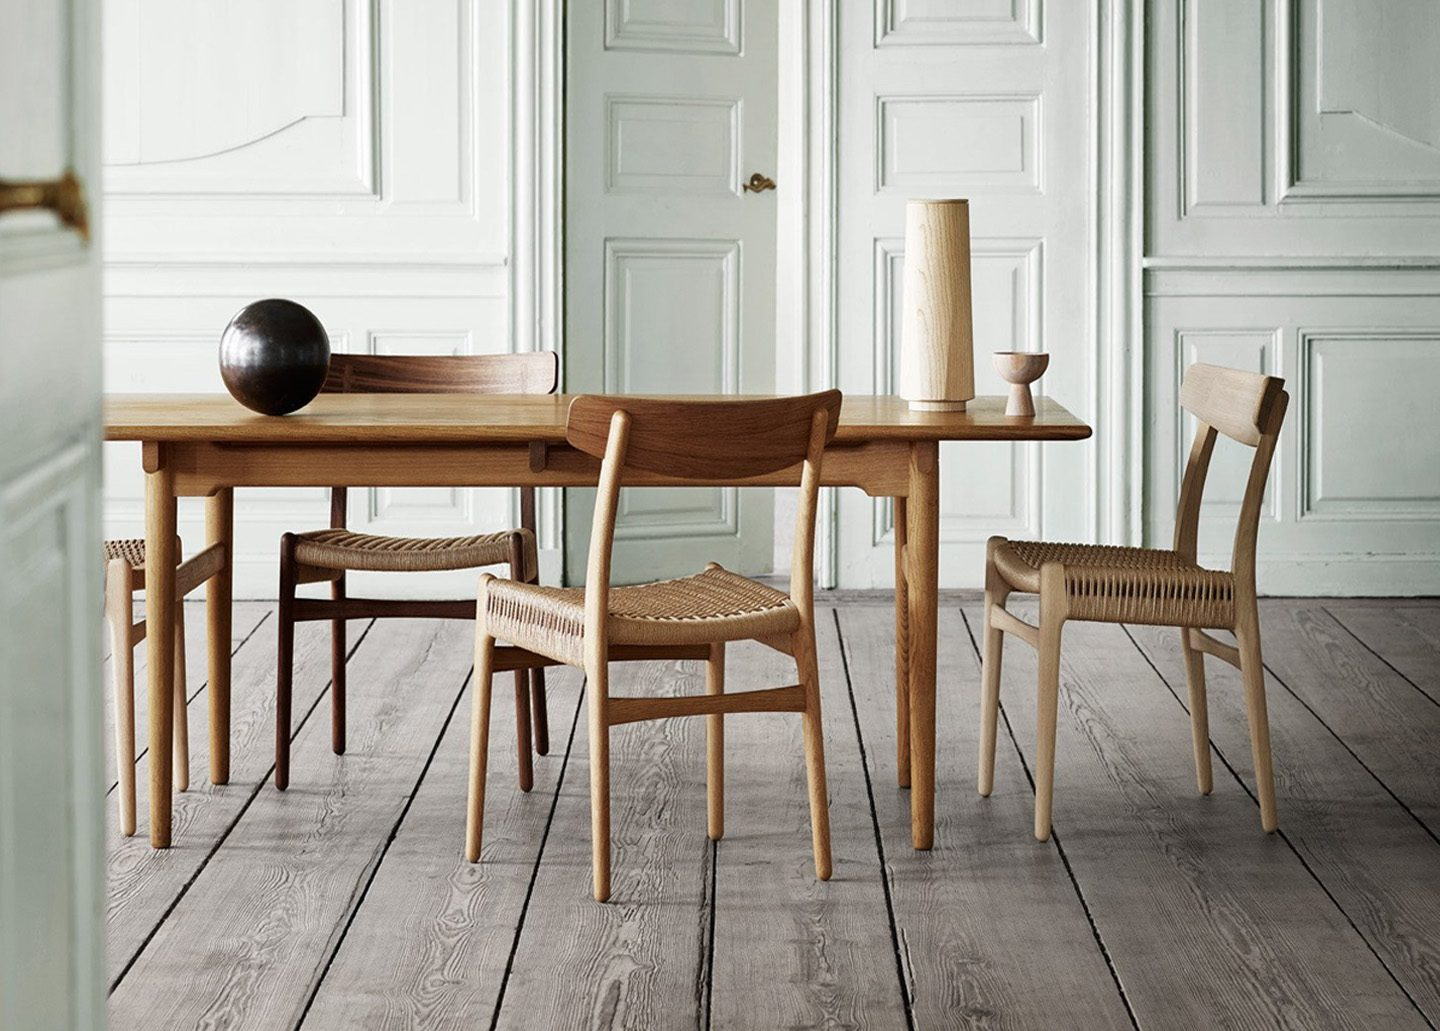 CH327 DINING TABLE BY CARL HANSEN - QUICKSHIP